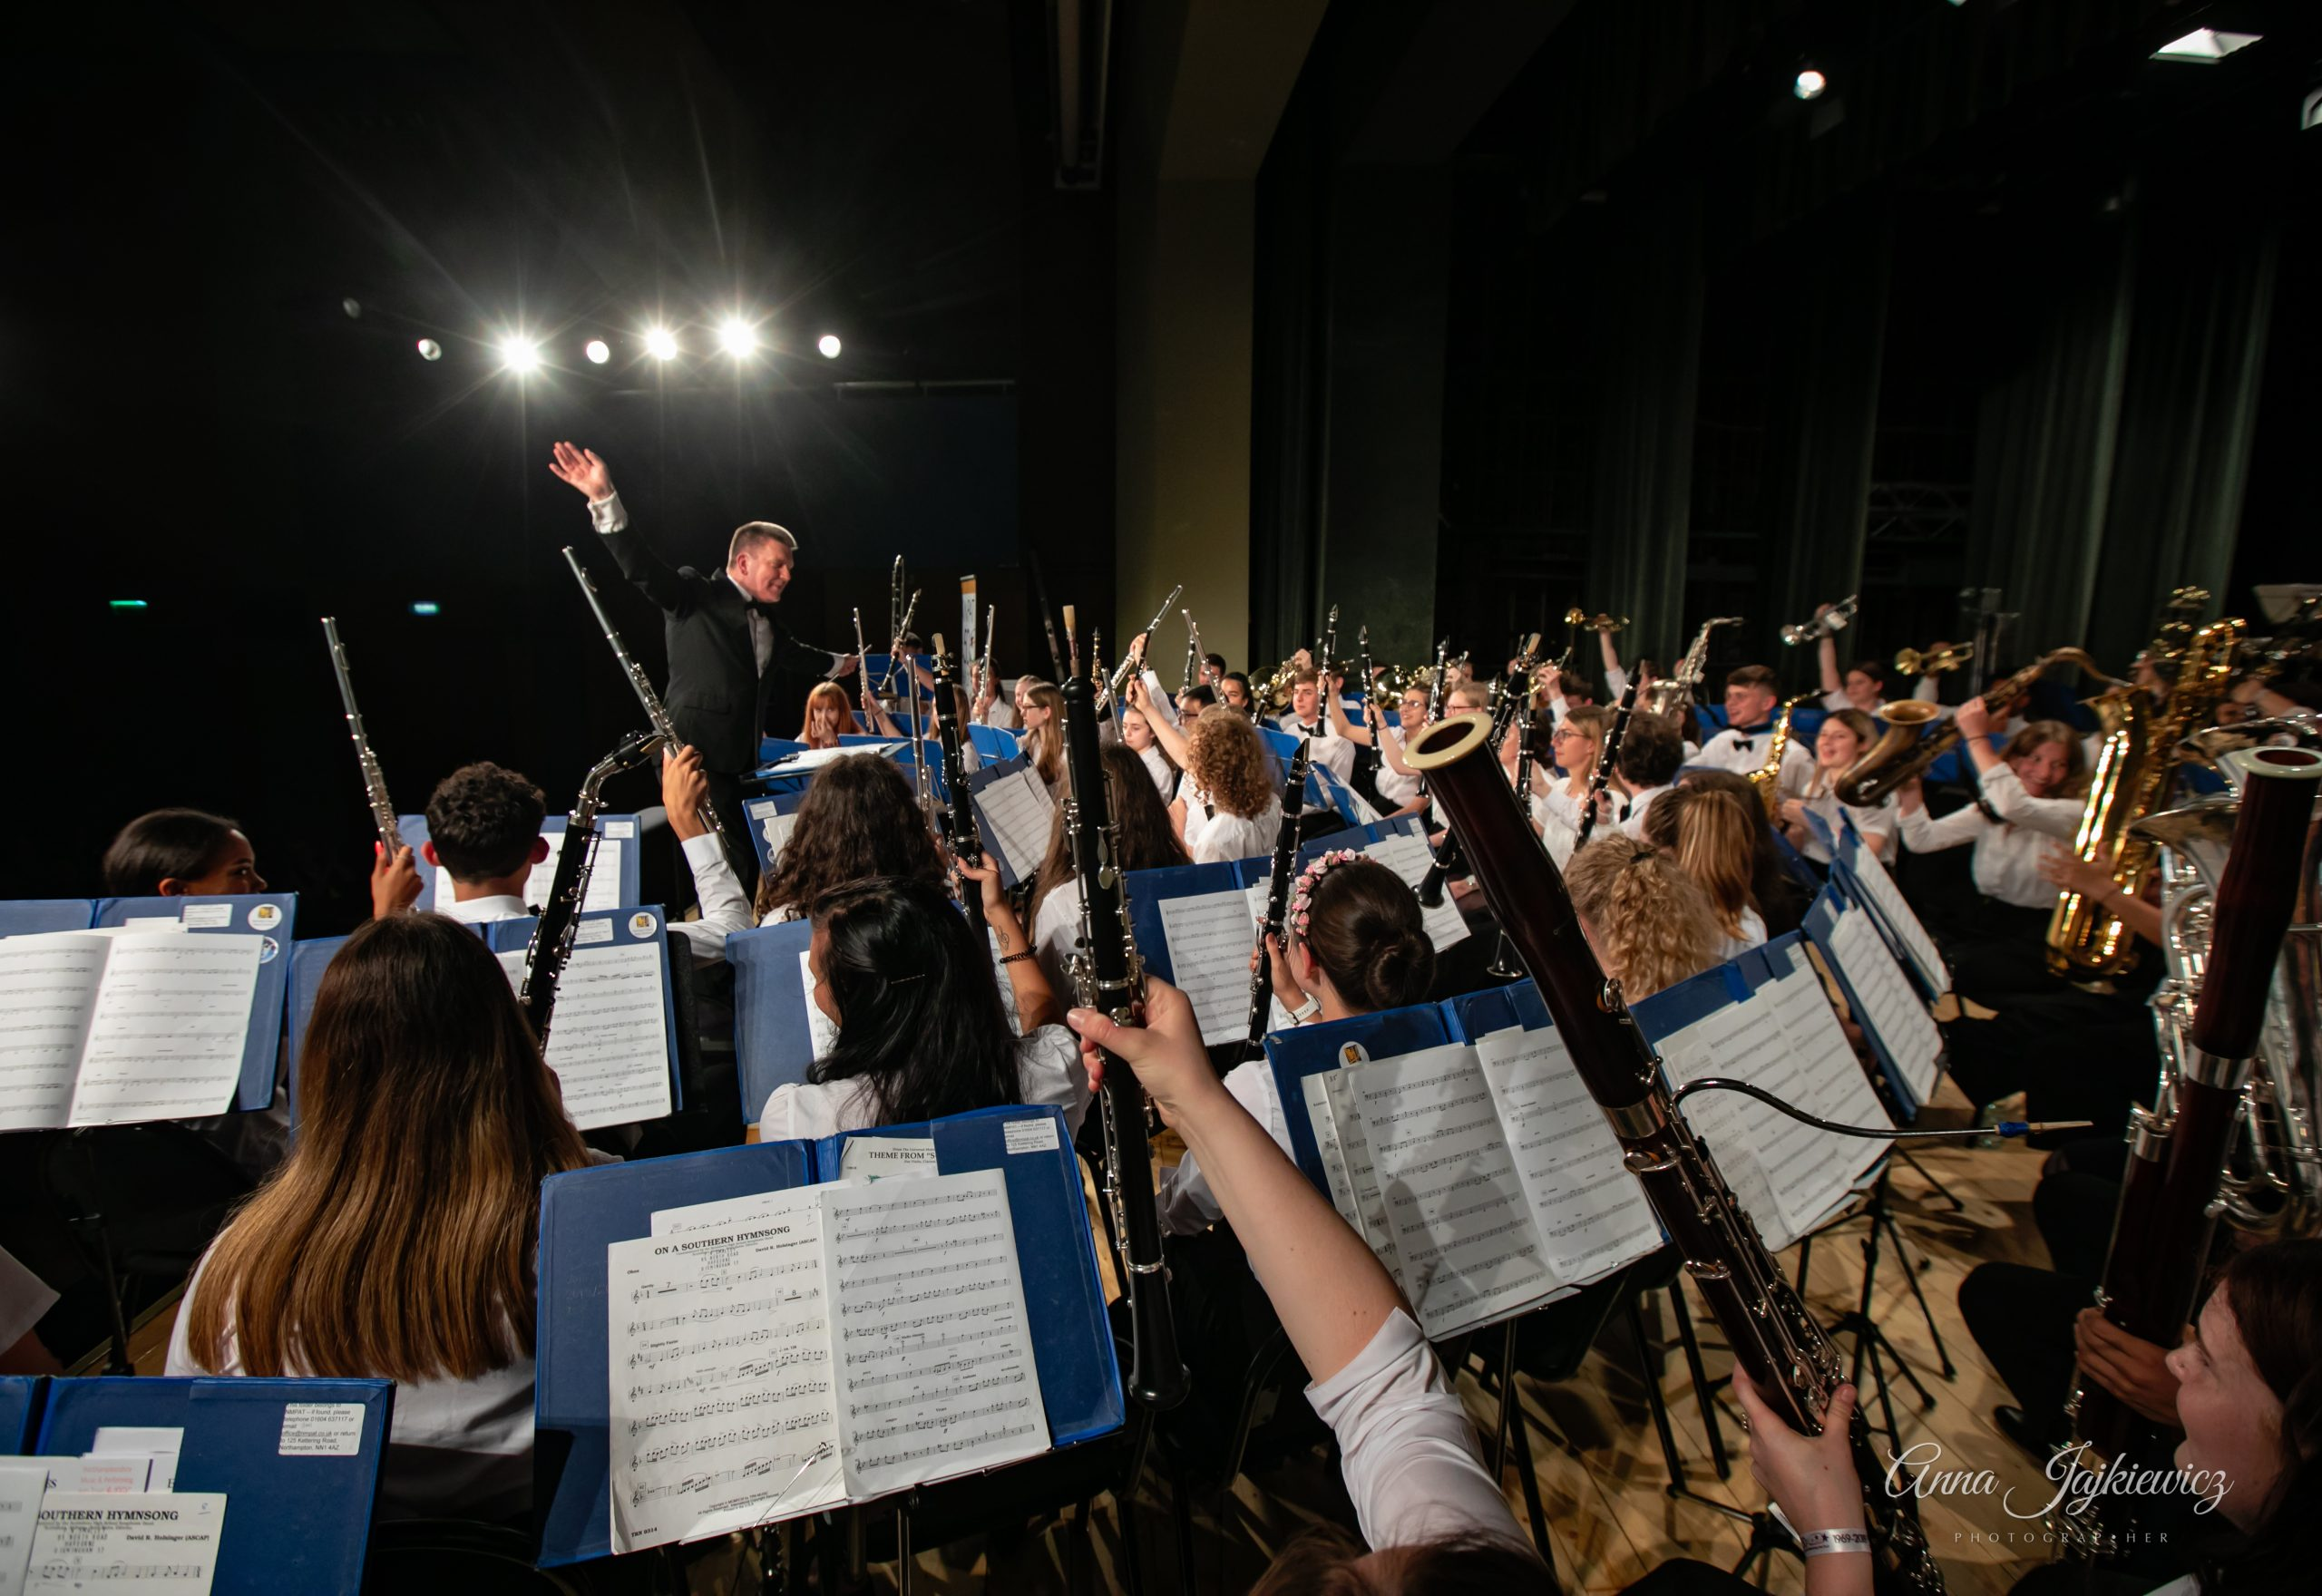 Orchestra performing on tour, instruments raised